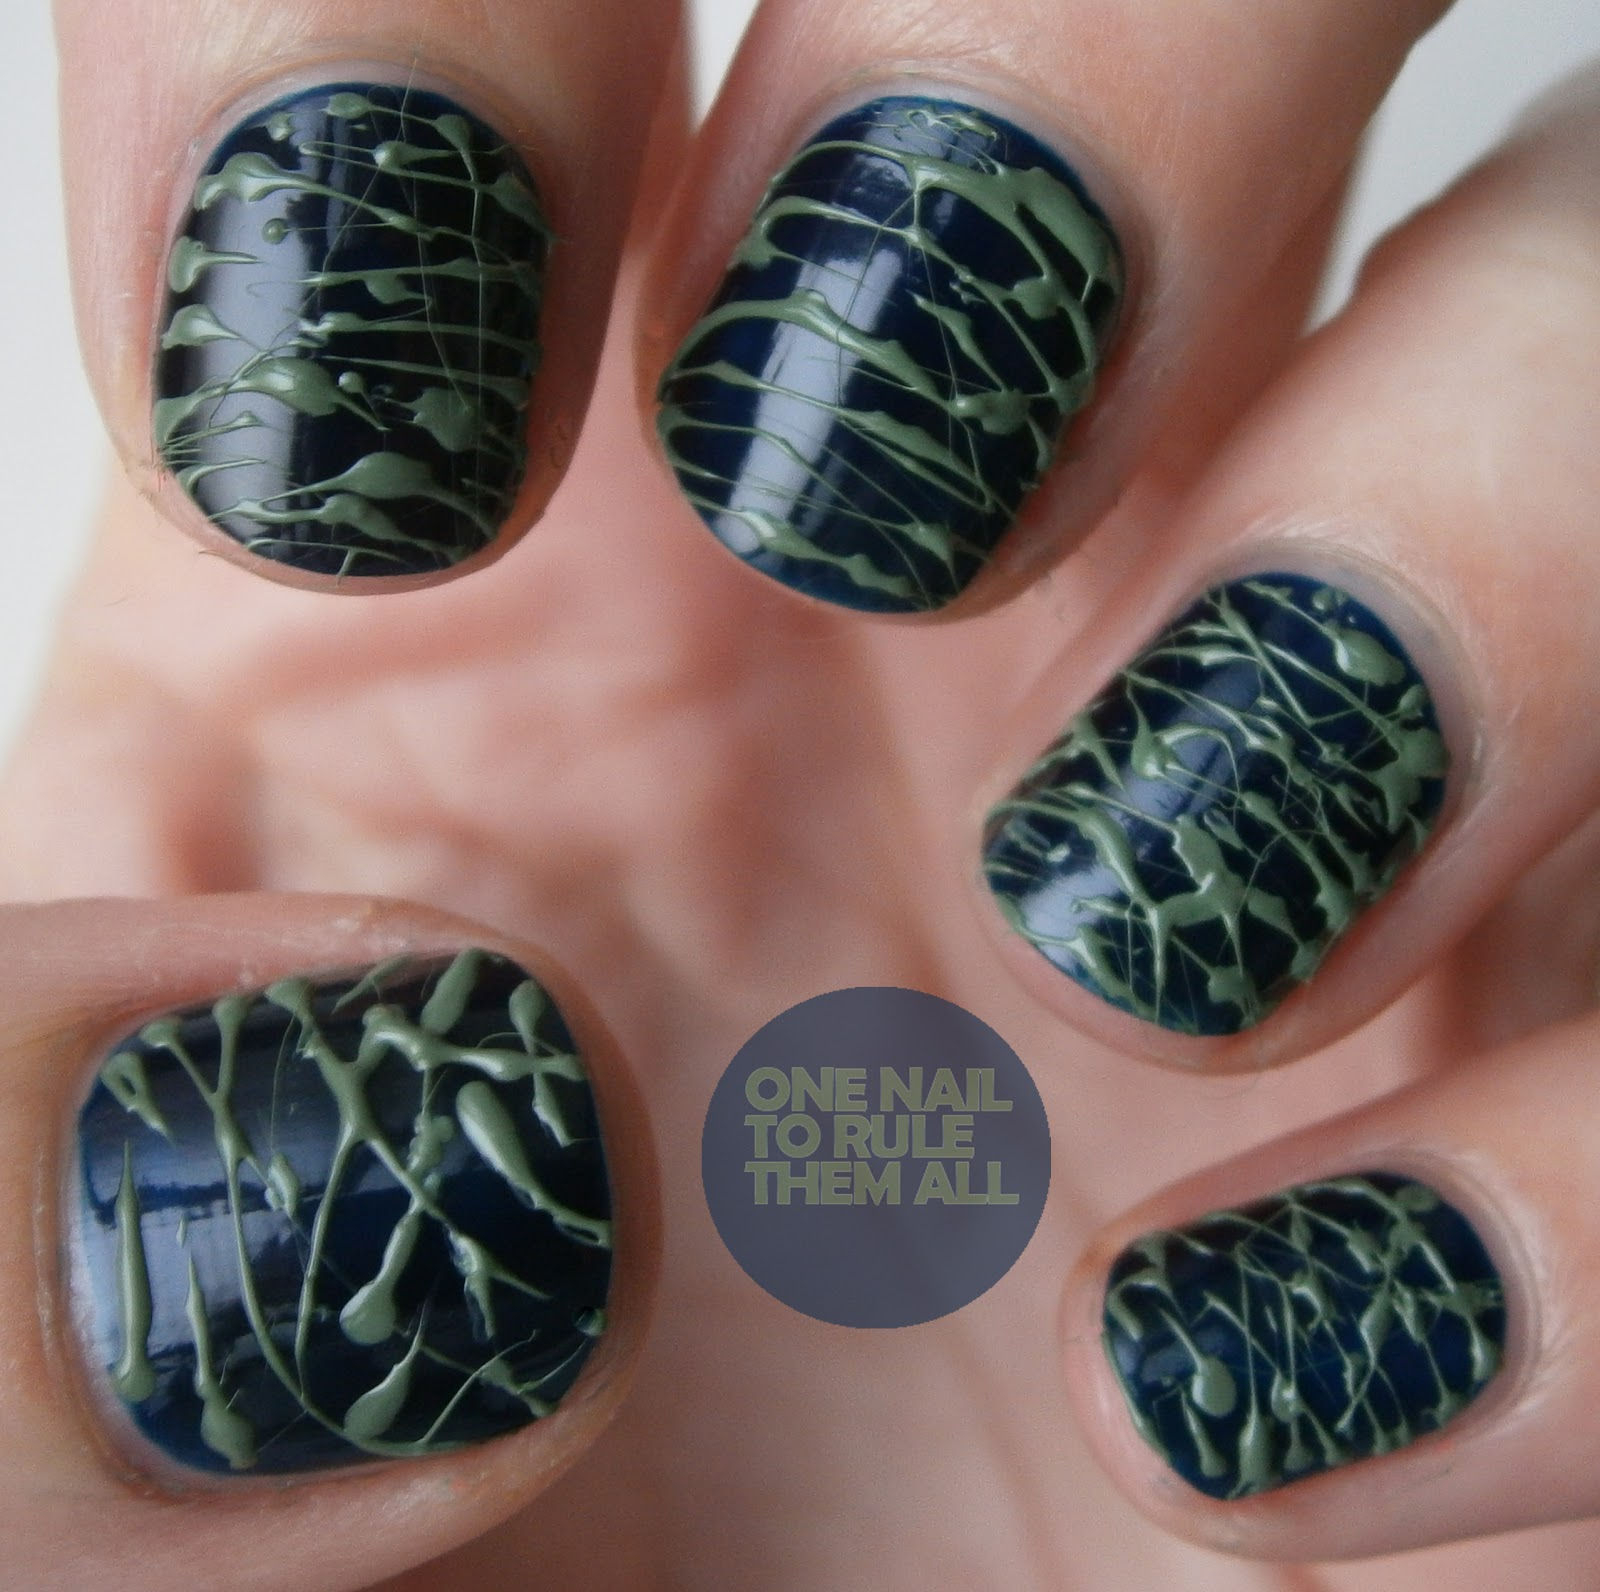 One Nail To Rule Them All Spun Sugar Nails